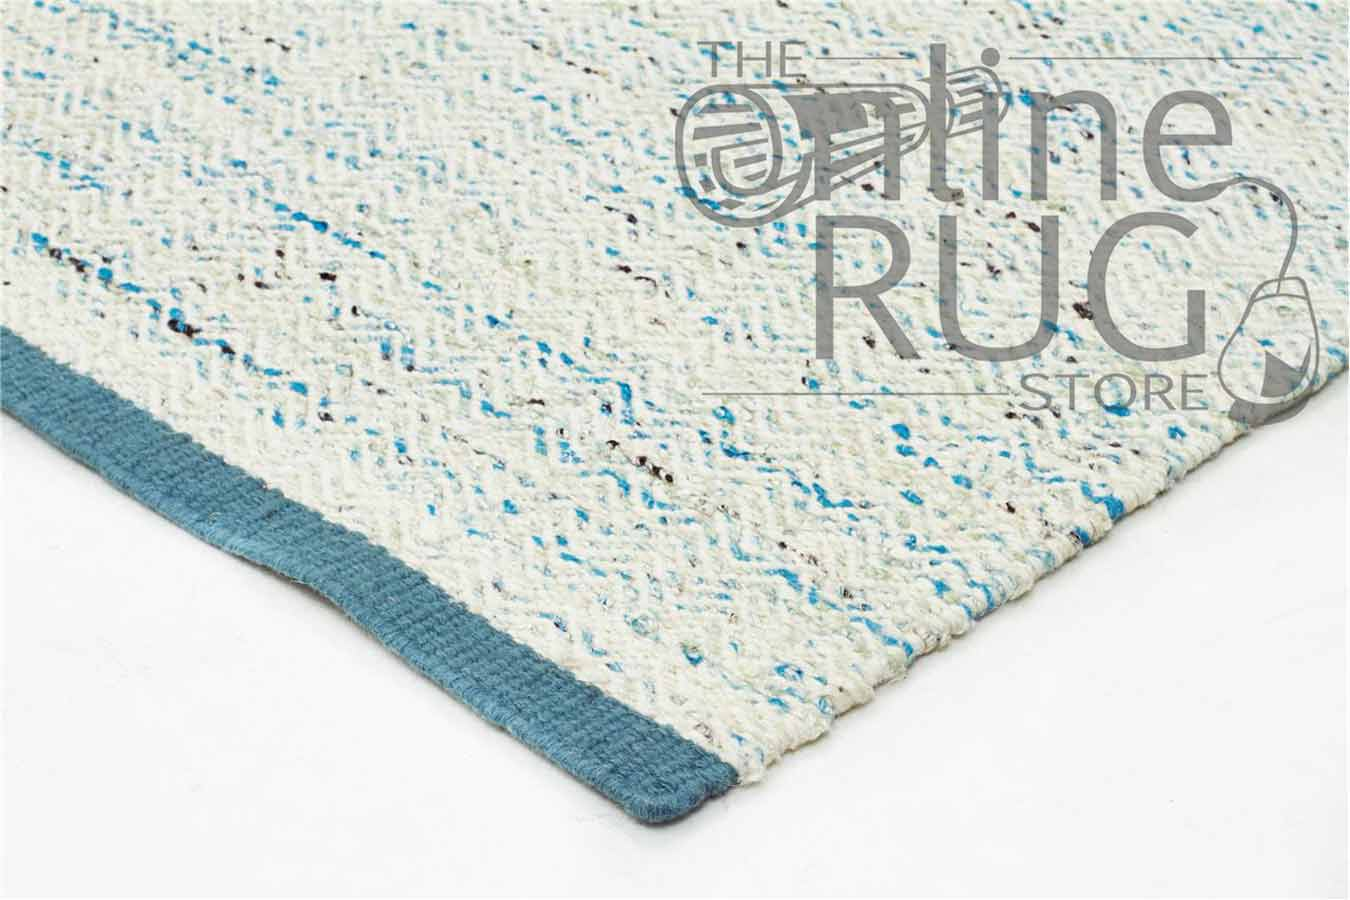 Rug shapes range from square or rectangular to circular or oval. Many people place rugs under tables, dining sets or other large furniture pieces, making choosing the perfect size essential. To ensure your rug will fit your décor perfectly, pick out a rug and furniture for your room at the same time.